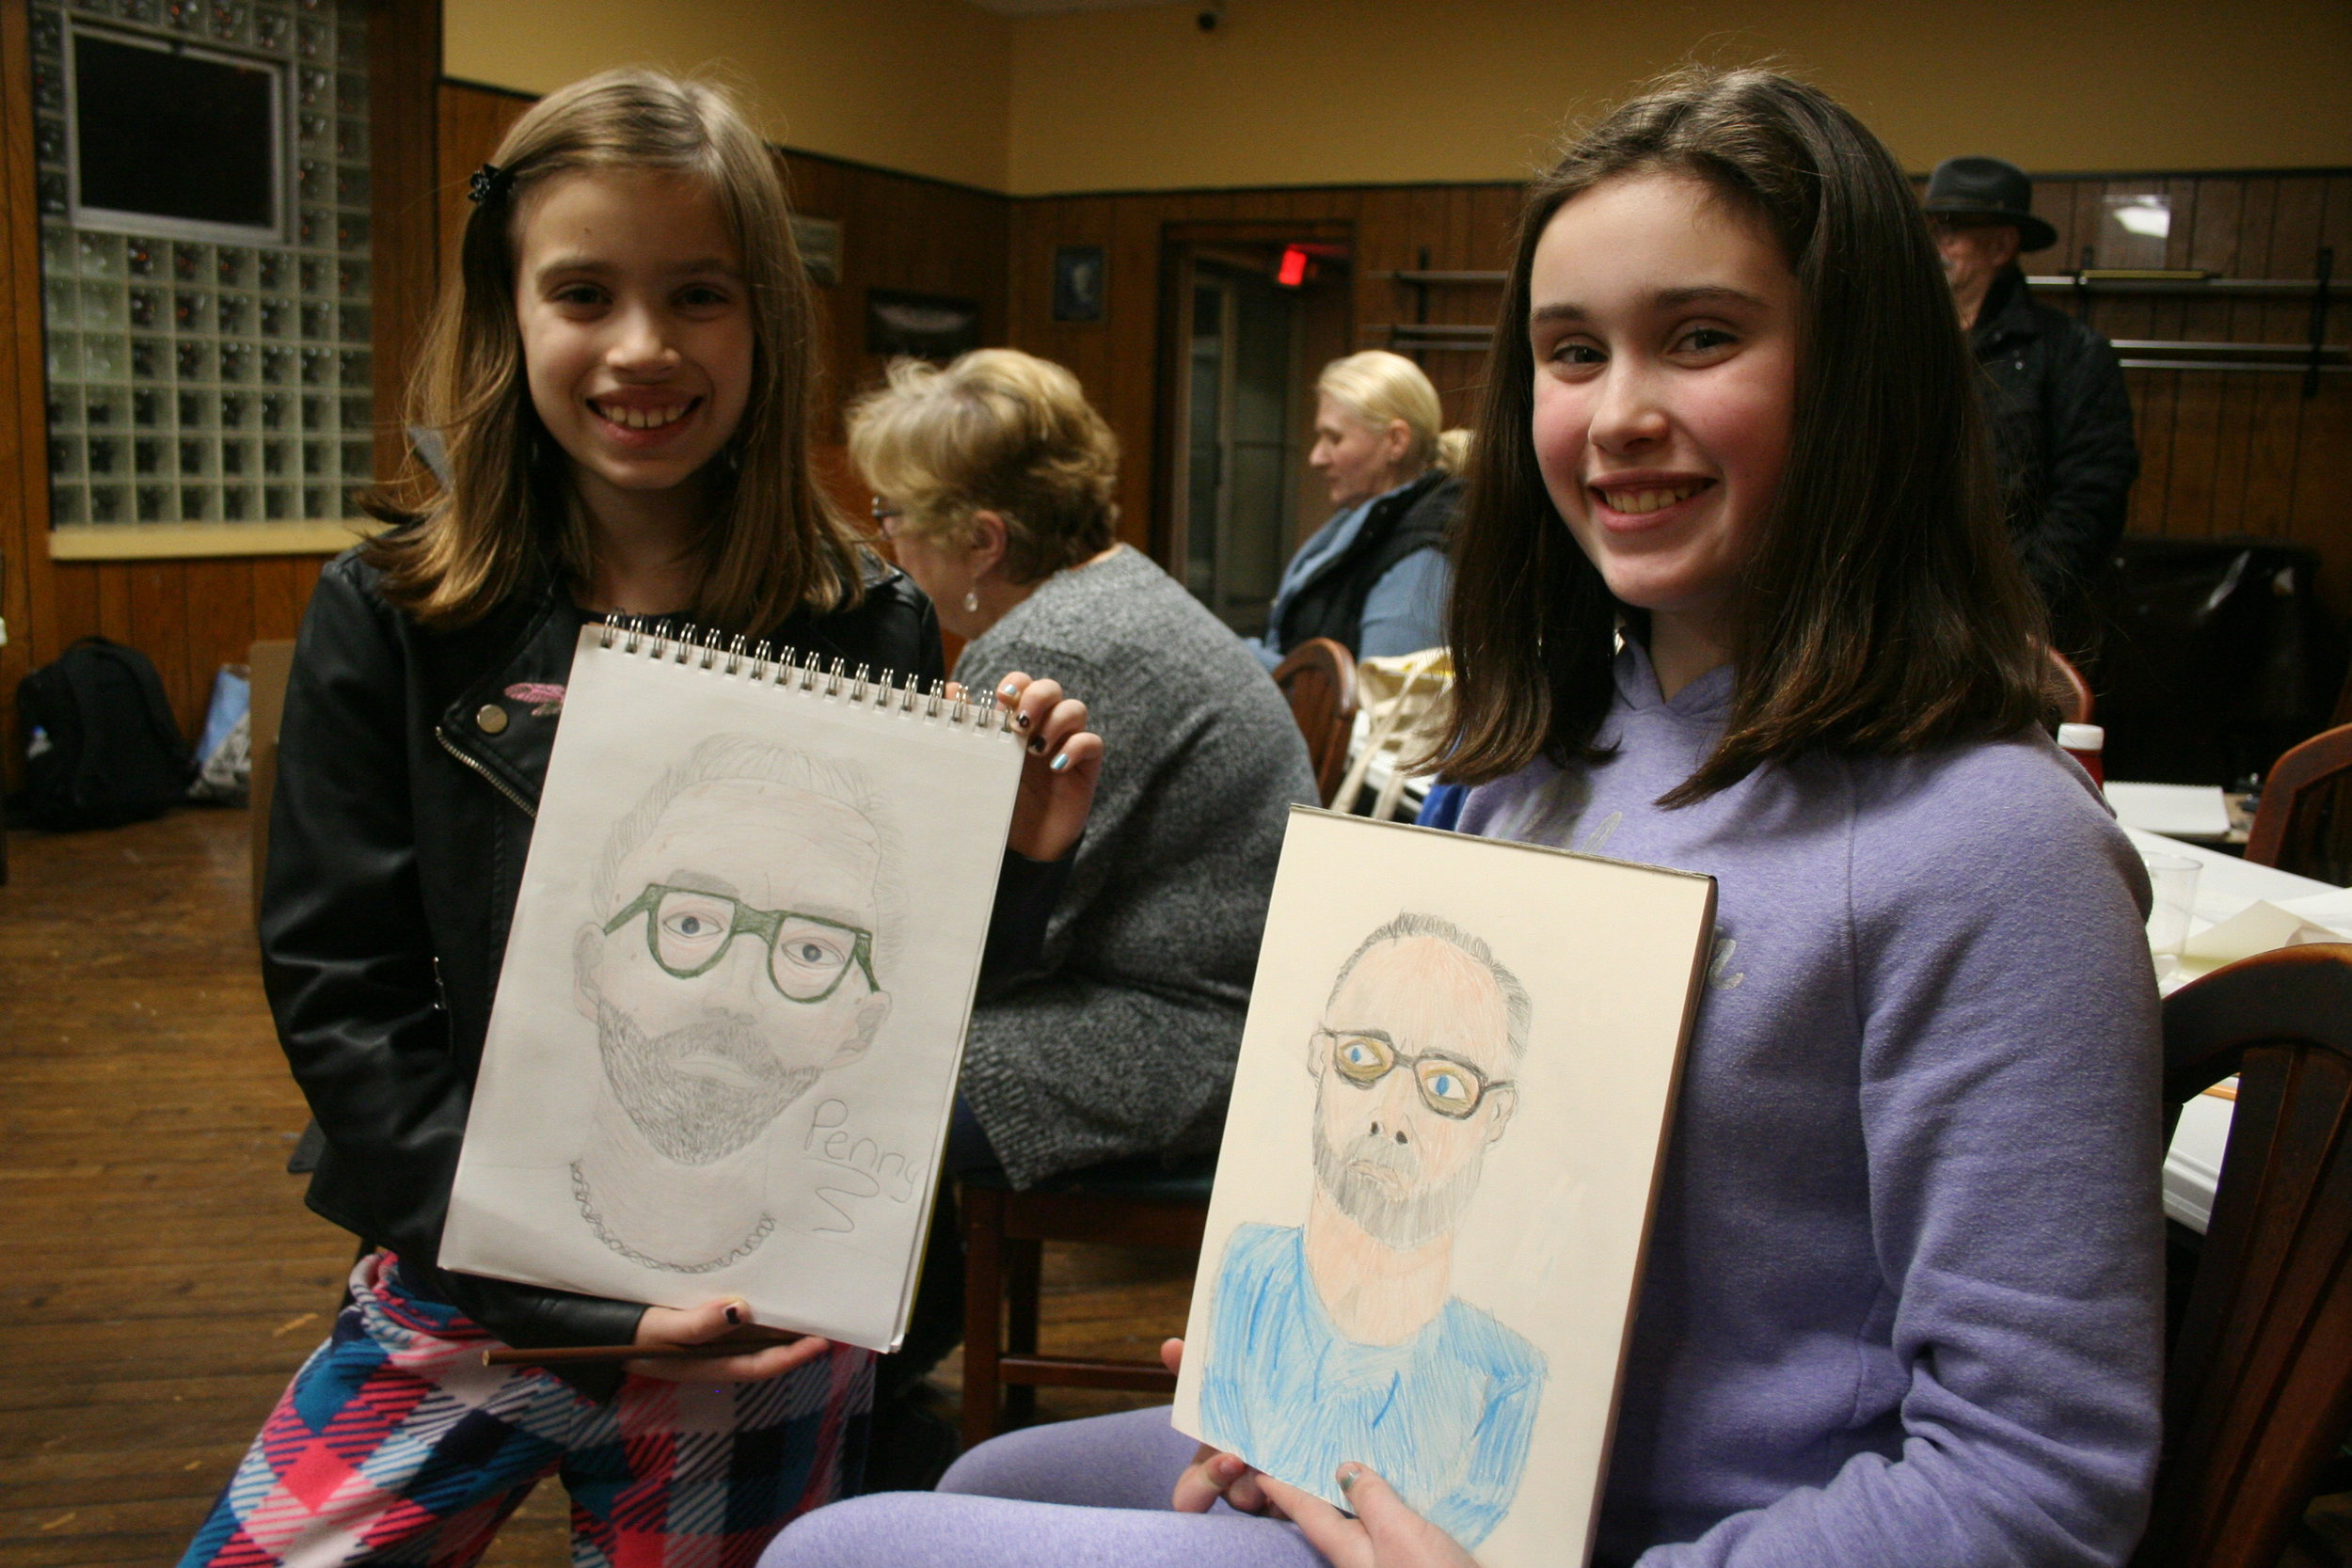 Penny and Tillie showing off their drawings.